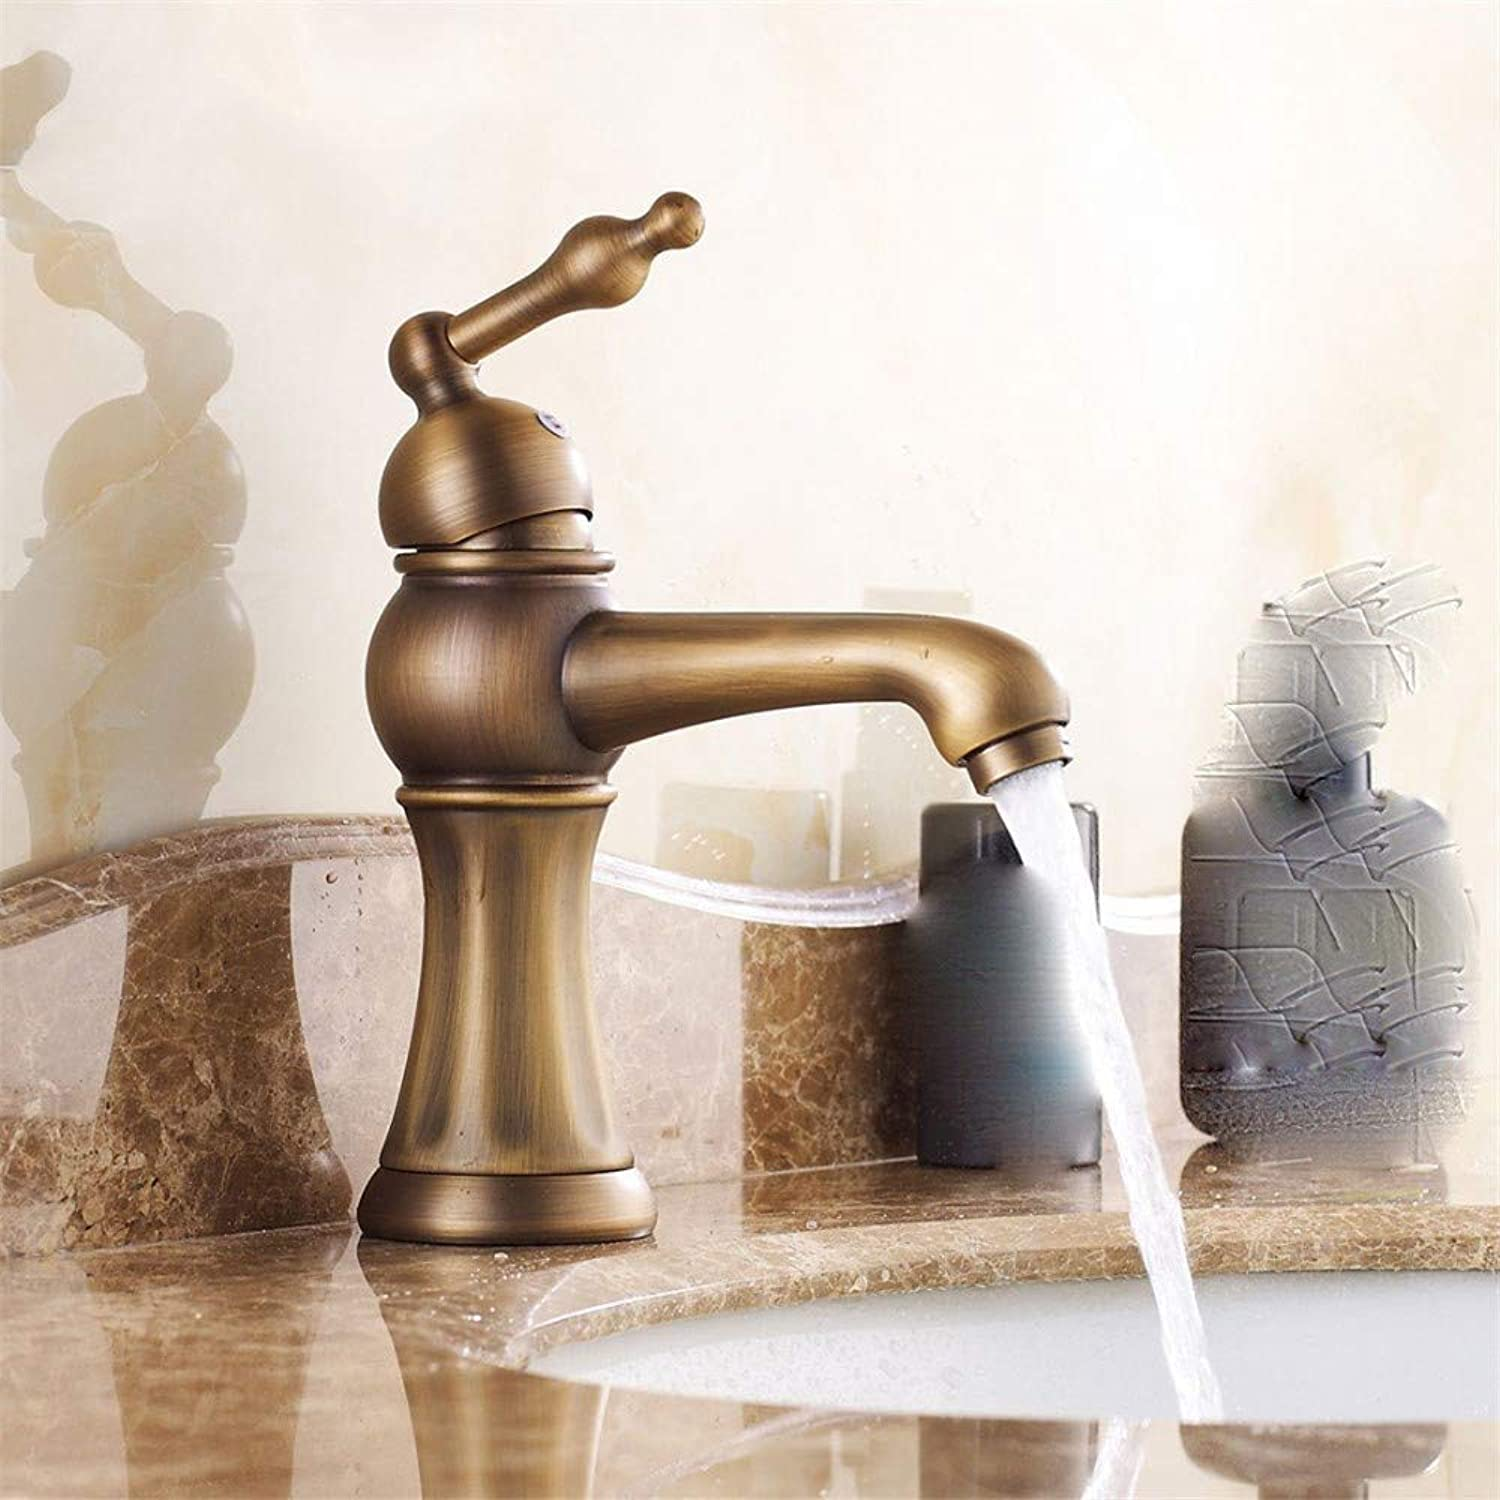 Water Tap Basin Copper Hot and Cold Single Hole redation Modern Taps Kitchen Brass Faucet Bathroom Sink Waterfall Tap Mixer Water Washroom Bath Tub Shower